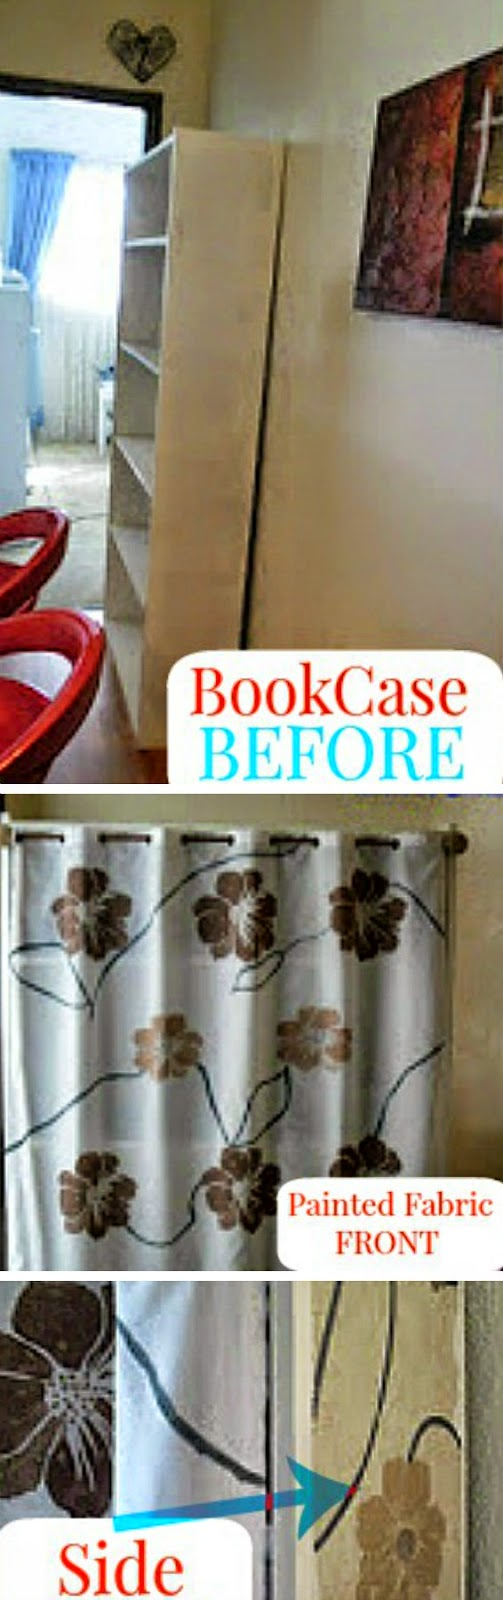 Wallpaper-Fabric Painted Craft Storage ~ How to turn a bookcase into a Craft Storage with matching sides and front {painting fabric using wallpaper} #FabricPainting #CraftStorage